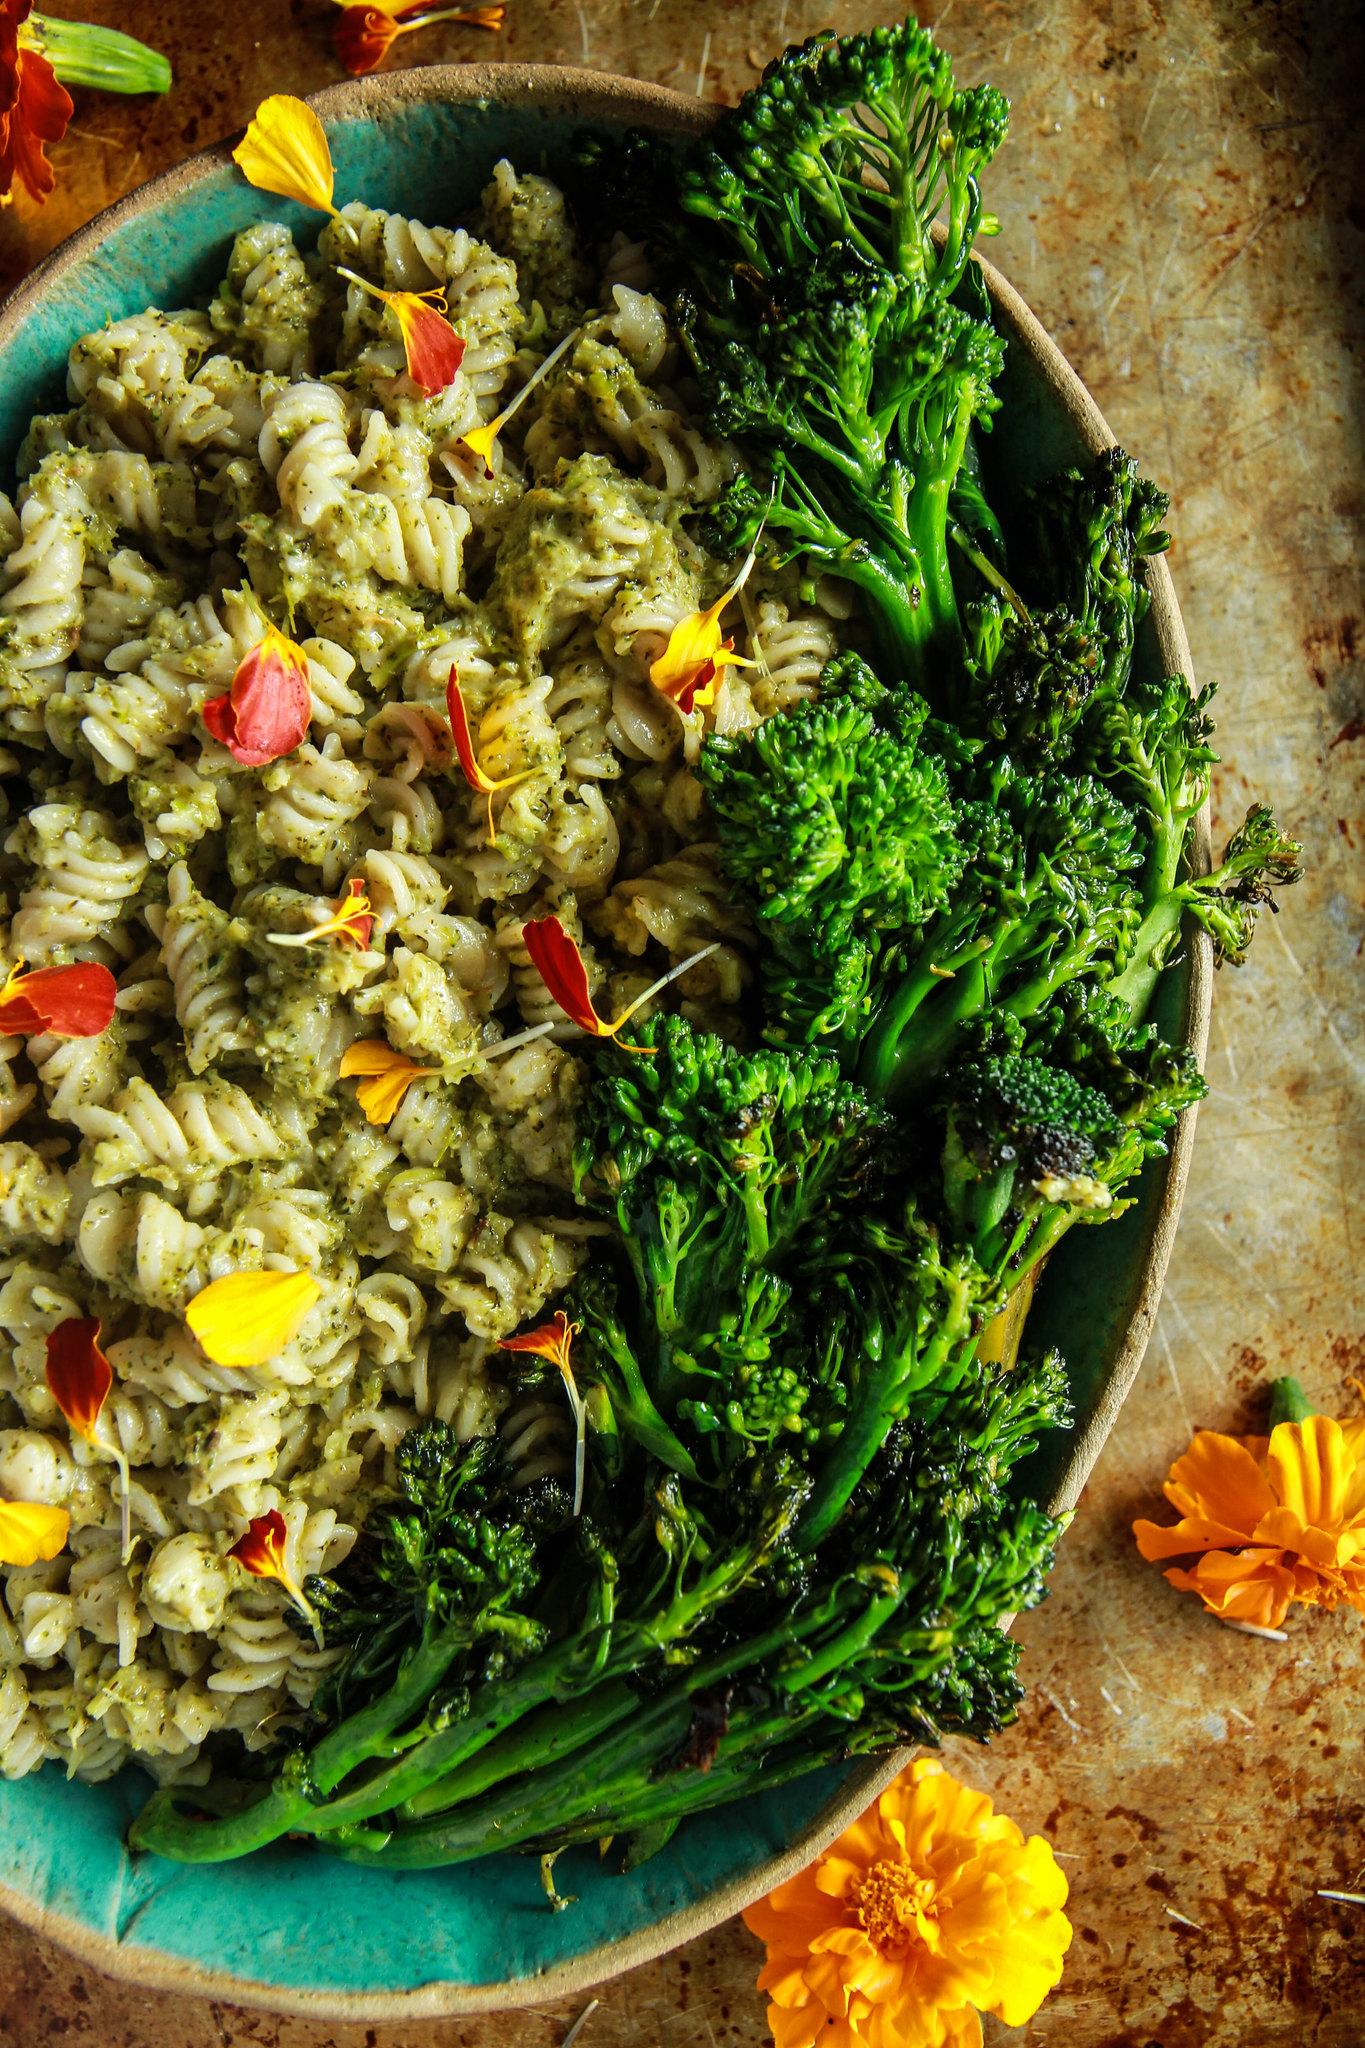 Roasted Broccoli Pesto Pasta - Gluten-free and Vegan from HeatherChristo.com